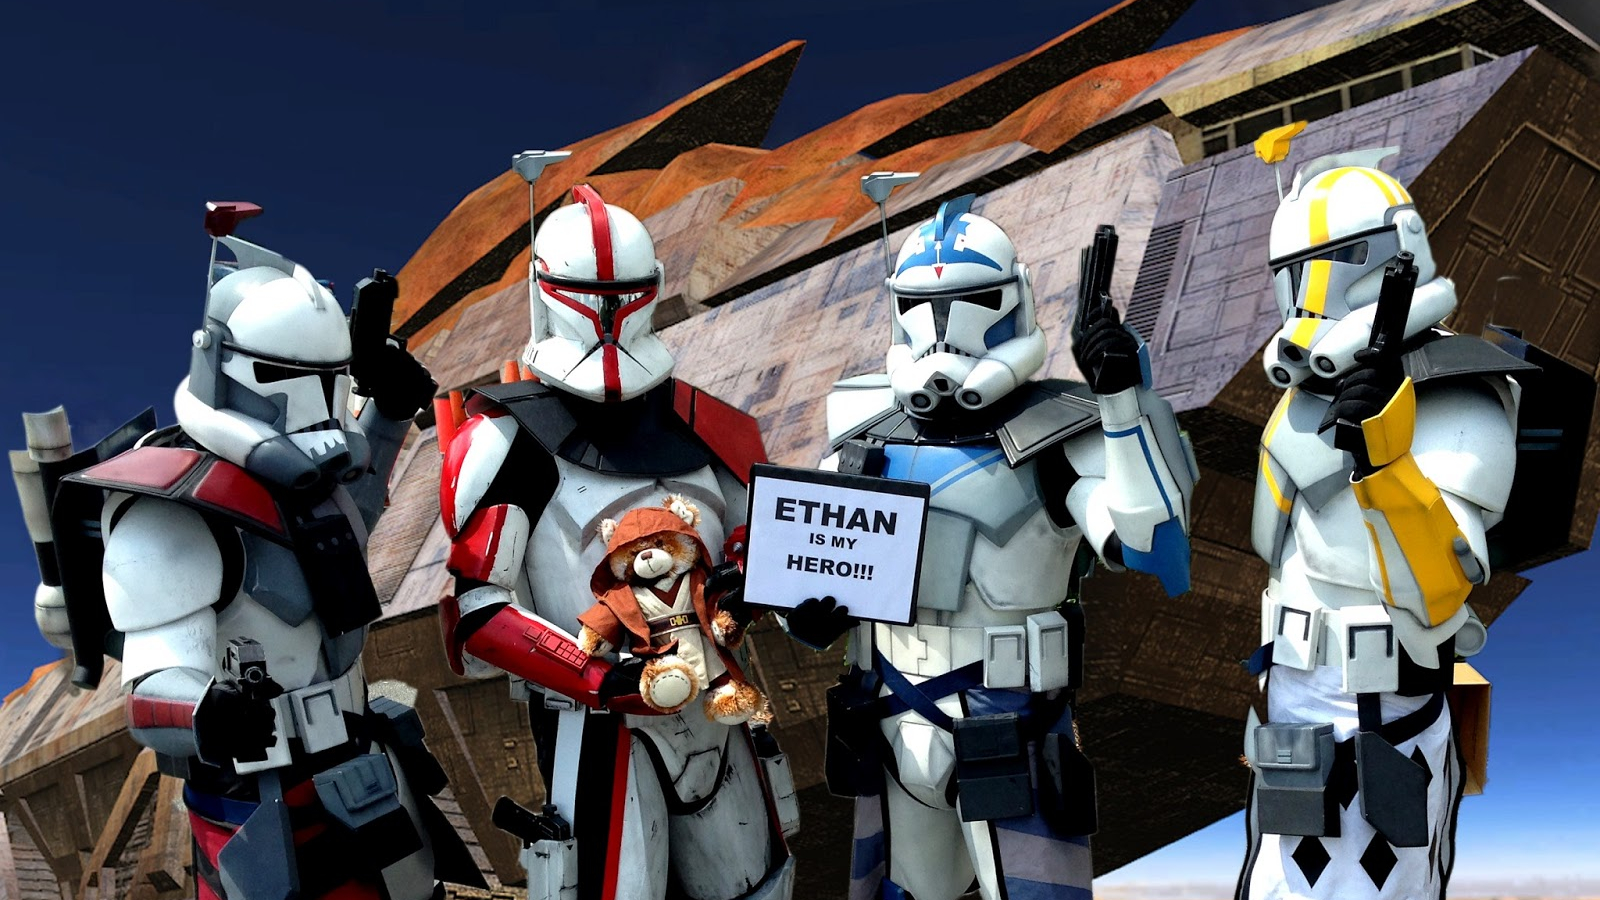 Free Download Clone Trooper Wallpaper Clone Troopers On Planet 1600x1200 For Your Desktop Mobile Tablet Explore 48 Clone Trooper Iphone Wallpaper Clone Wars Wallpaper Shadow Trooper Wallpaper Star Wars